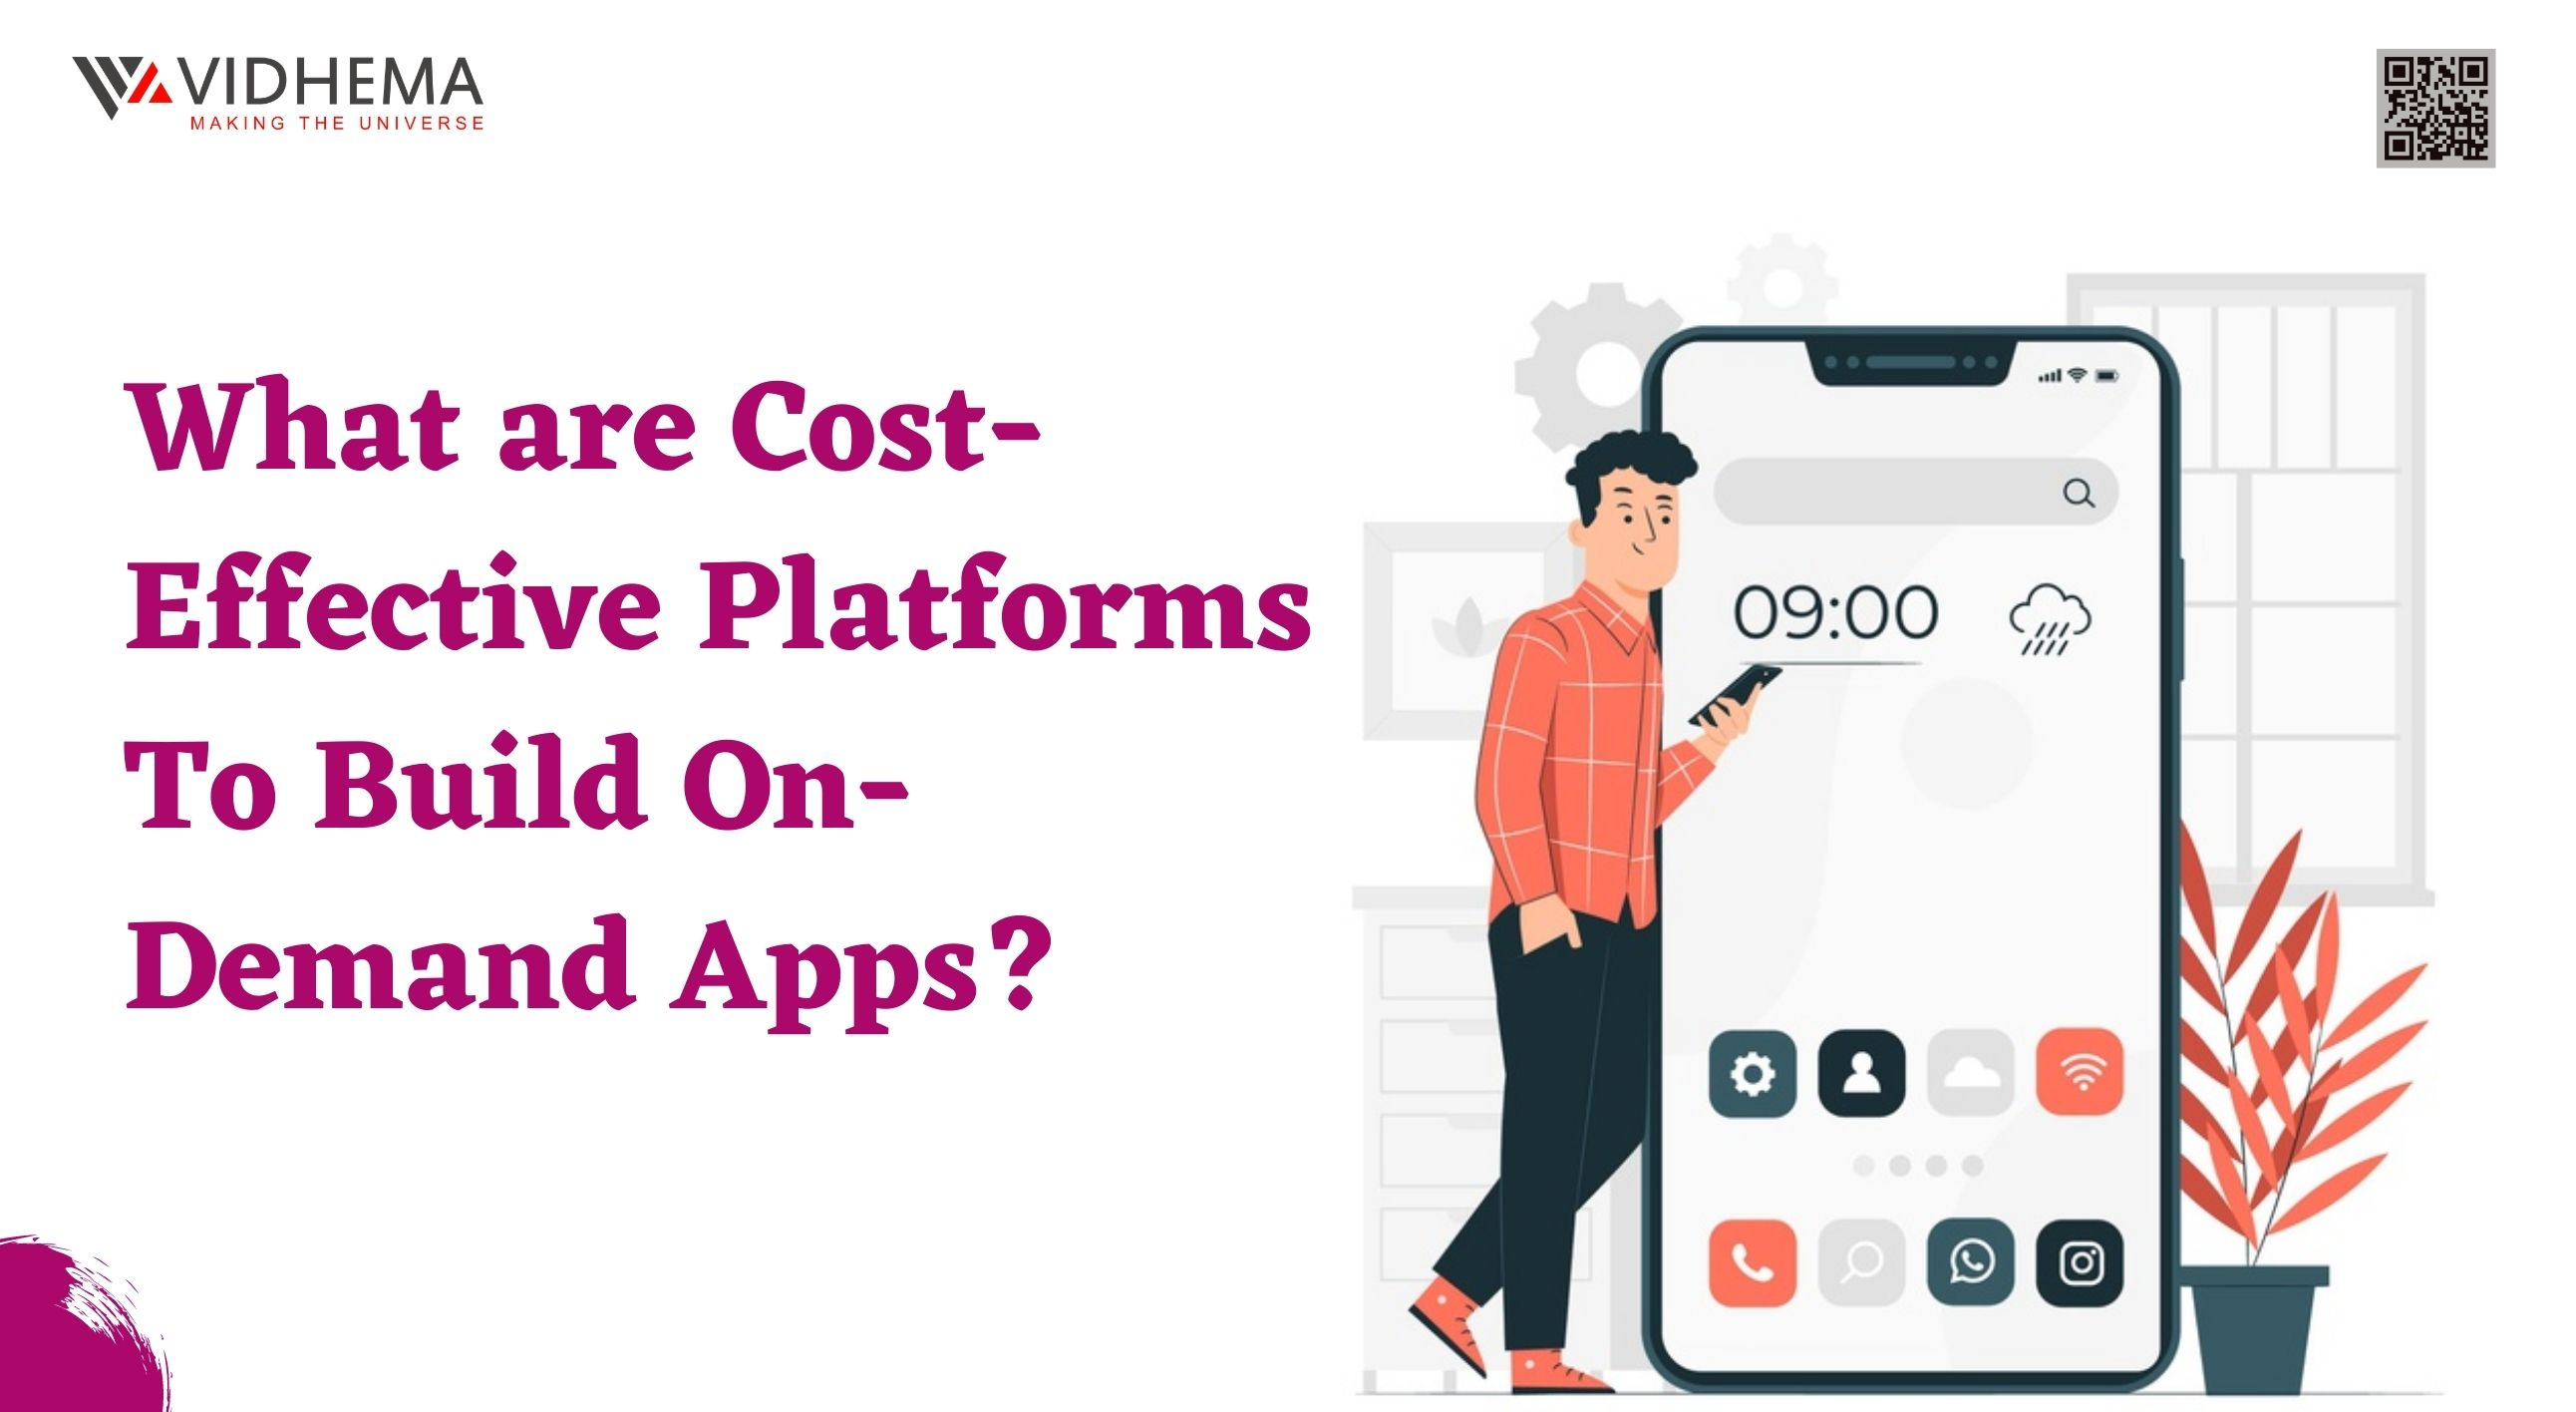 What are Cost-Effective Platforms to Build On-Demand Apps